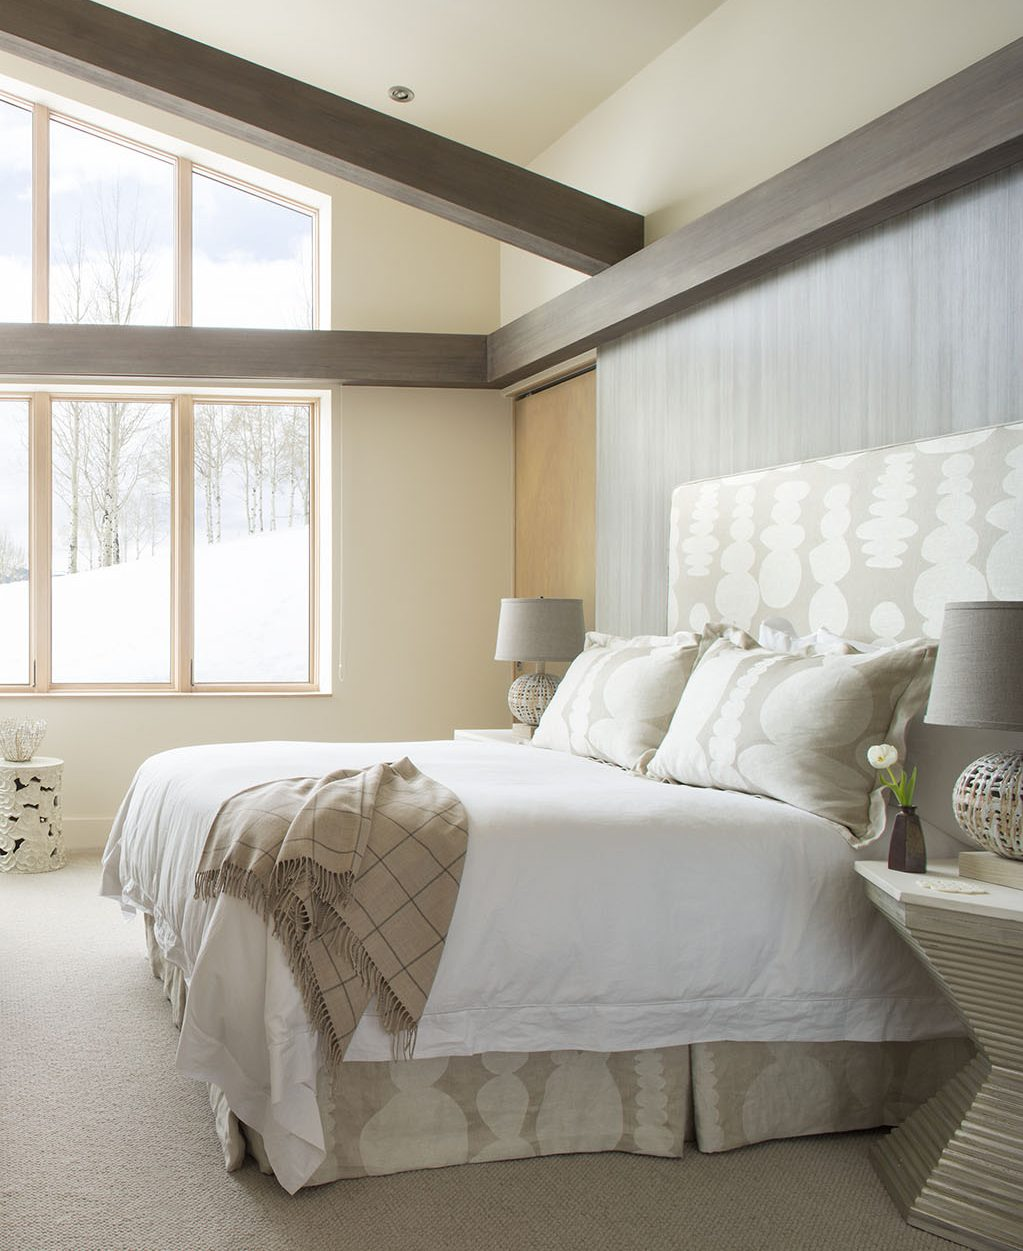 Mountain Star Home Remodel Bedroom